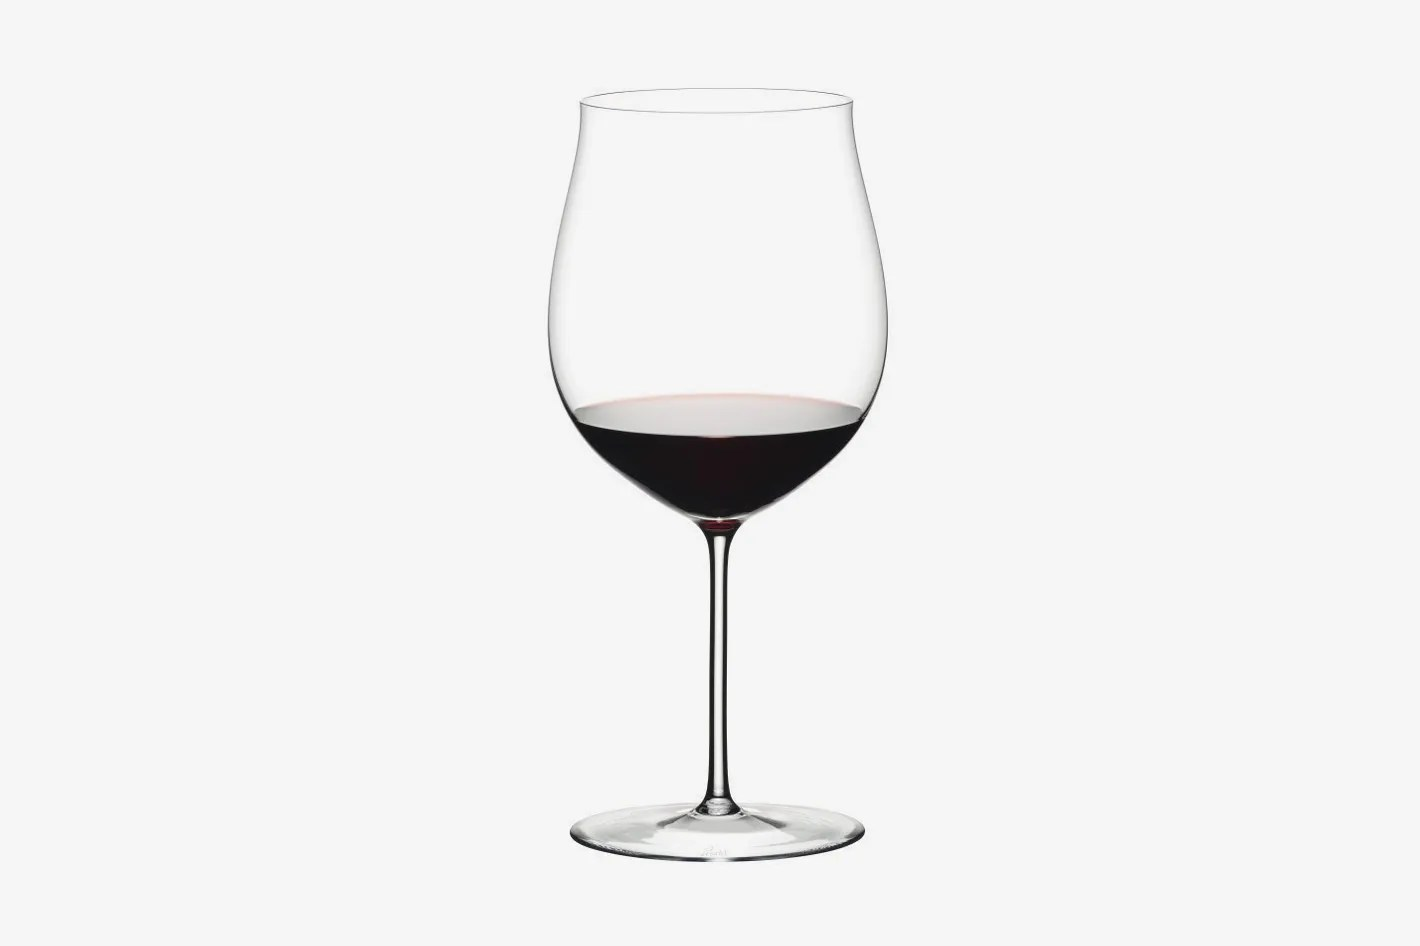 Riedel Glas Riedel Sommeliers Burgundy Grand Cru Wine Glass Set Of 2